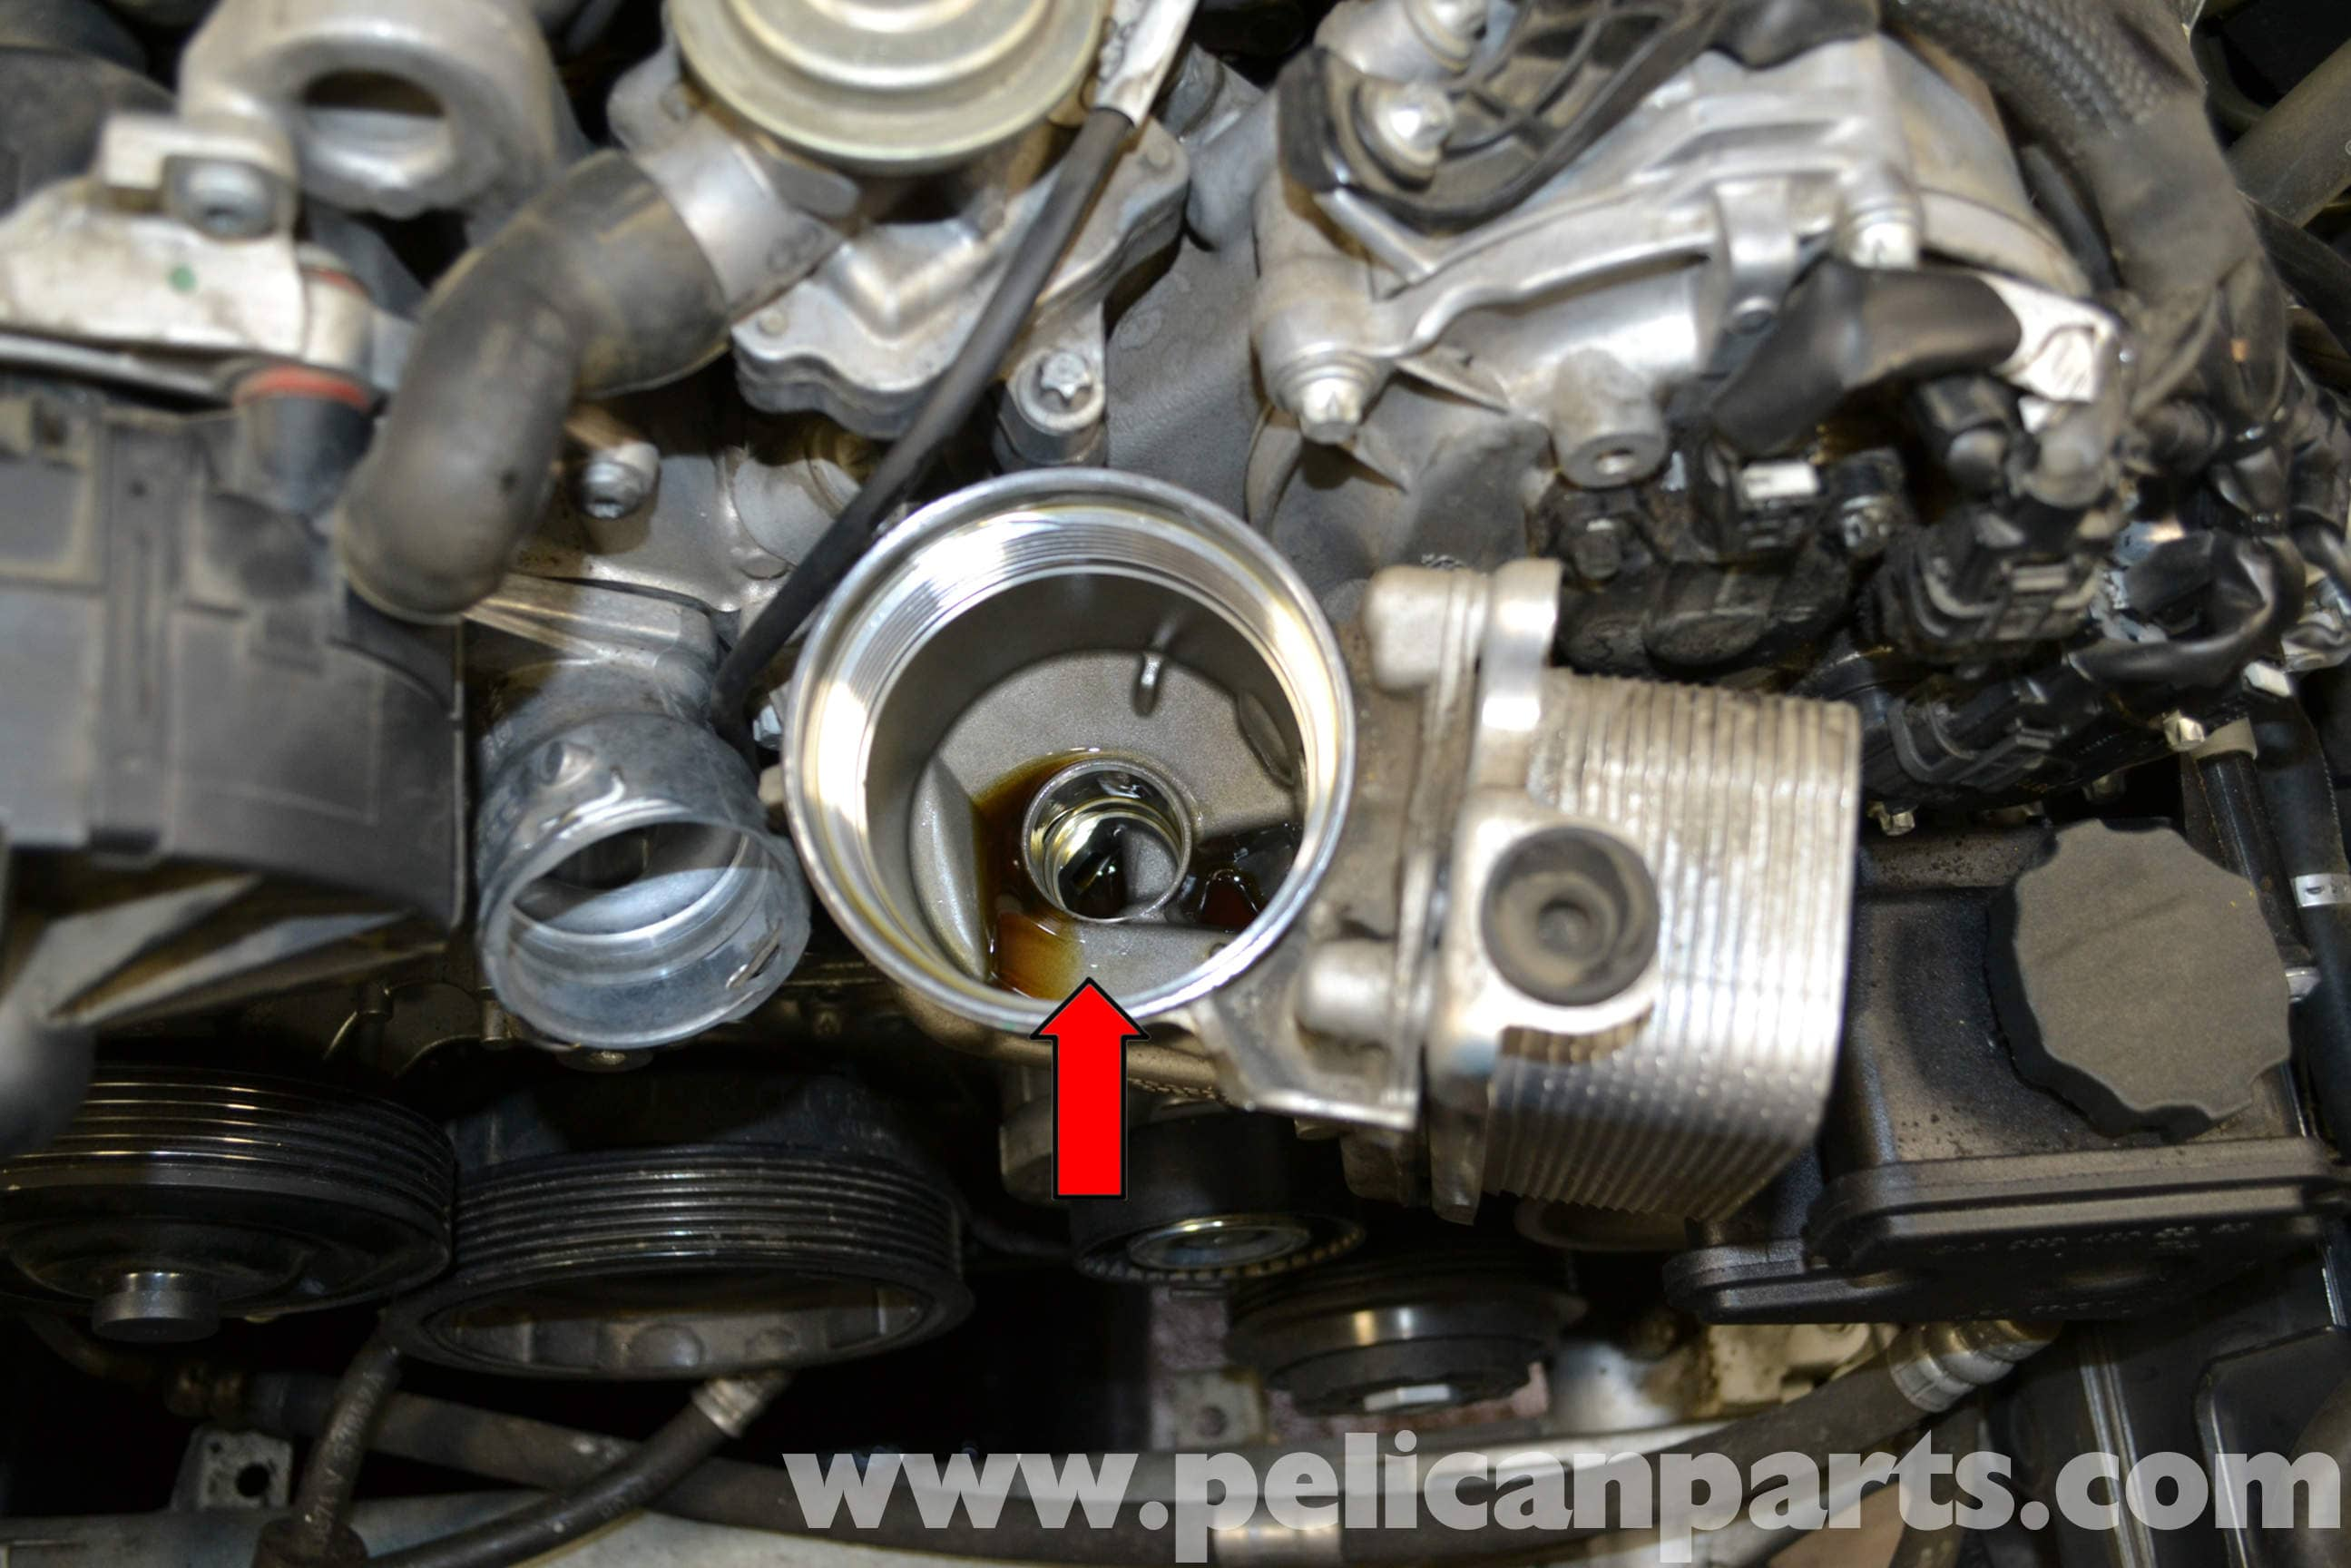 Mercedes benz w204 oil change 2008 2014 c250 c300 for How much is a mercedes benz oil change